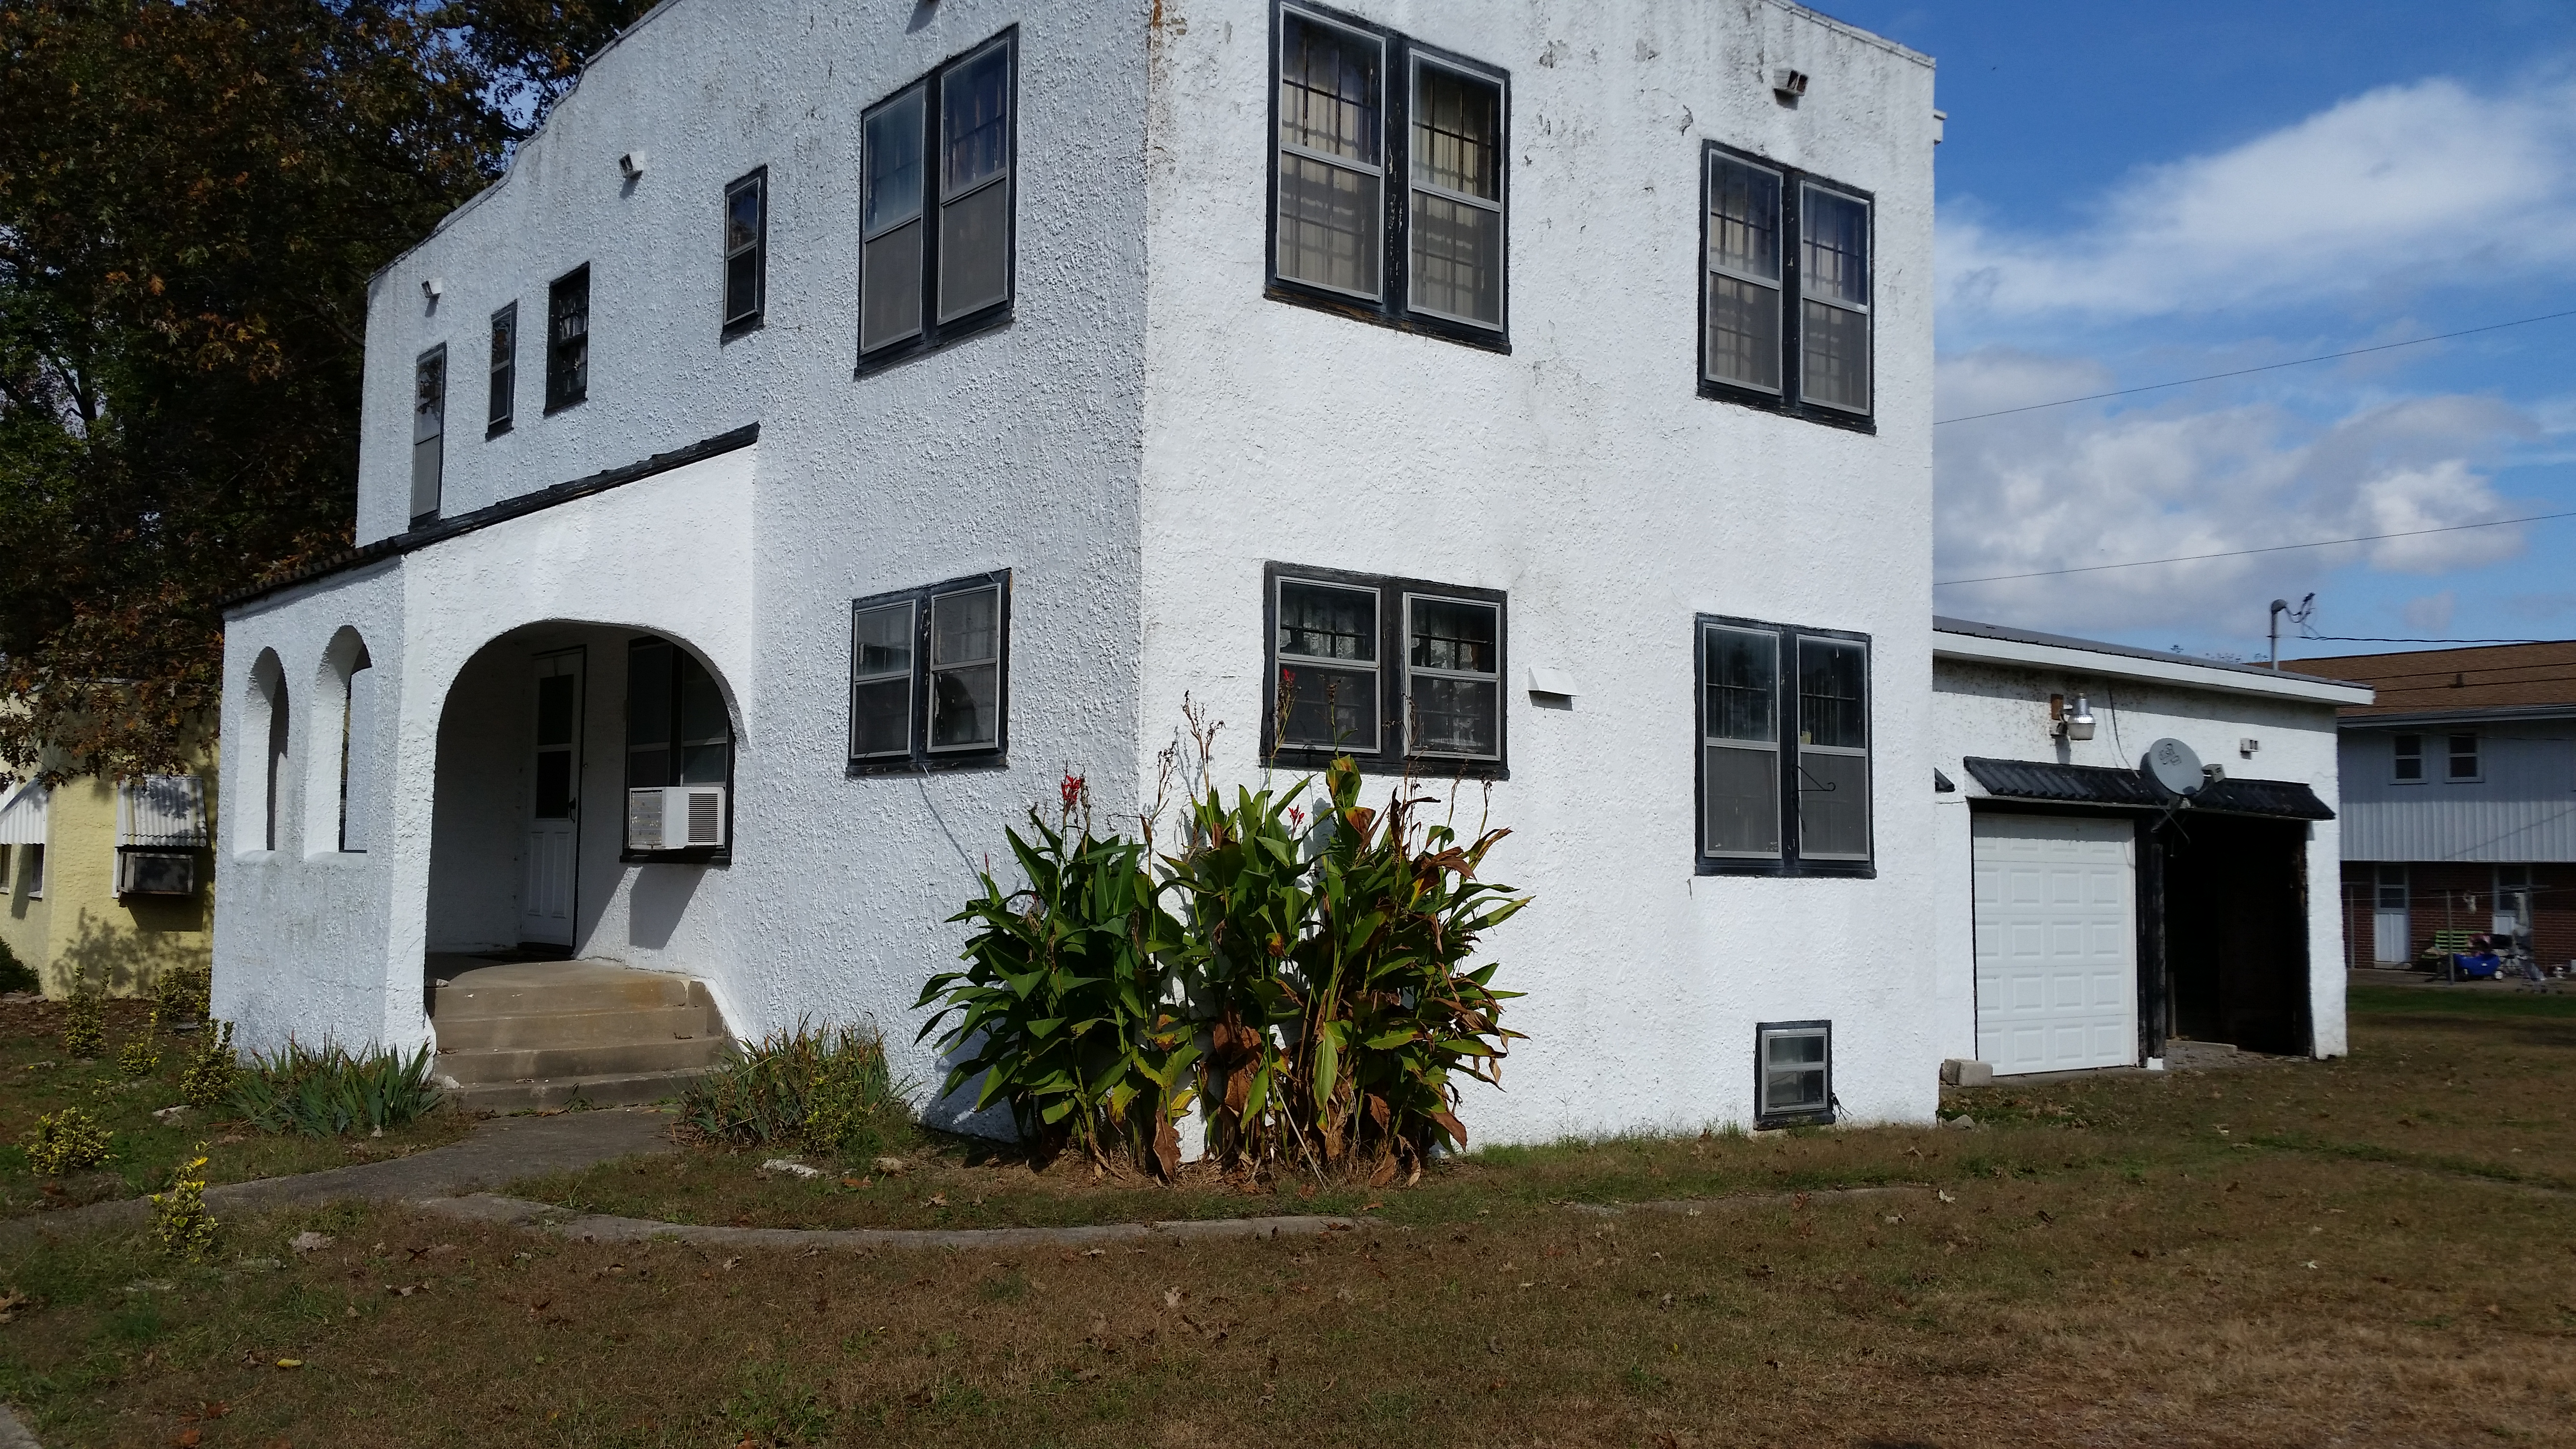 RENT TO OWN 5 Bedroom 3 1 2 Bath  5000 Down   799 per Month. Carbondale Apartments for Lease   Murphysboro Apartments for Lease